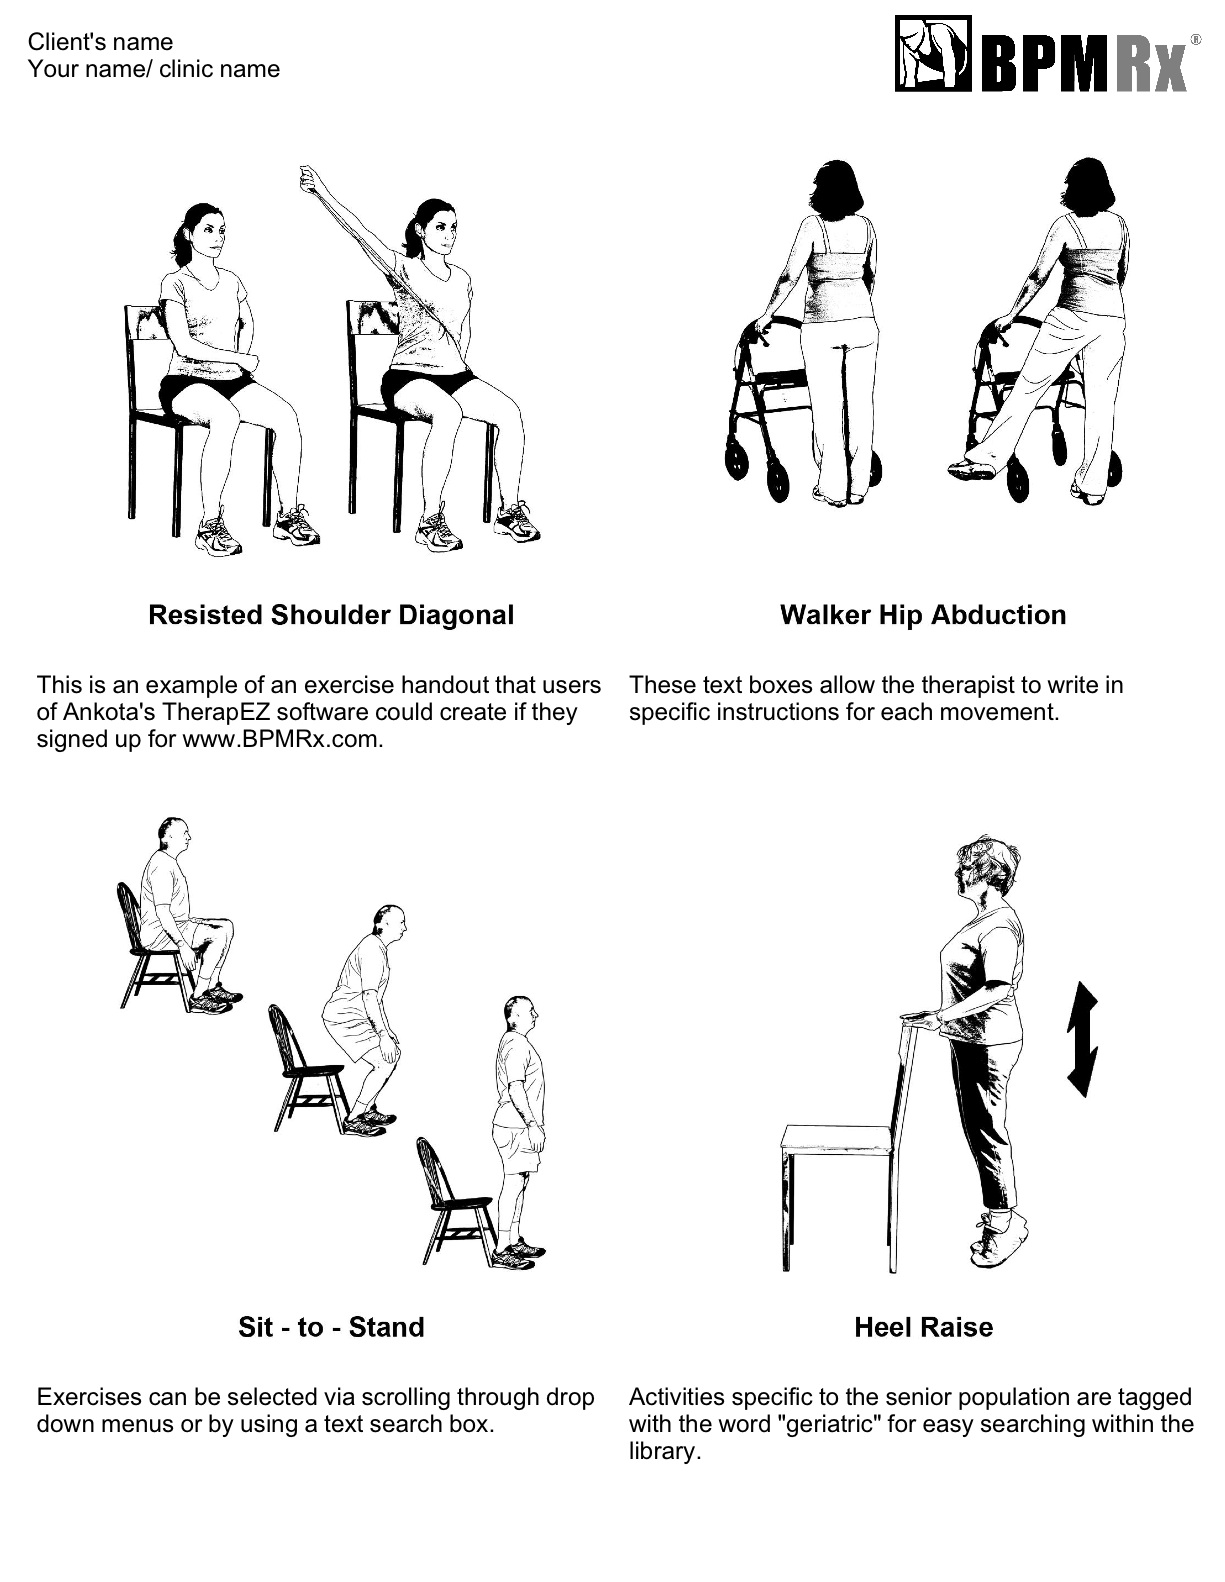 Home Exercise Plan for Physical Therapy